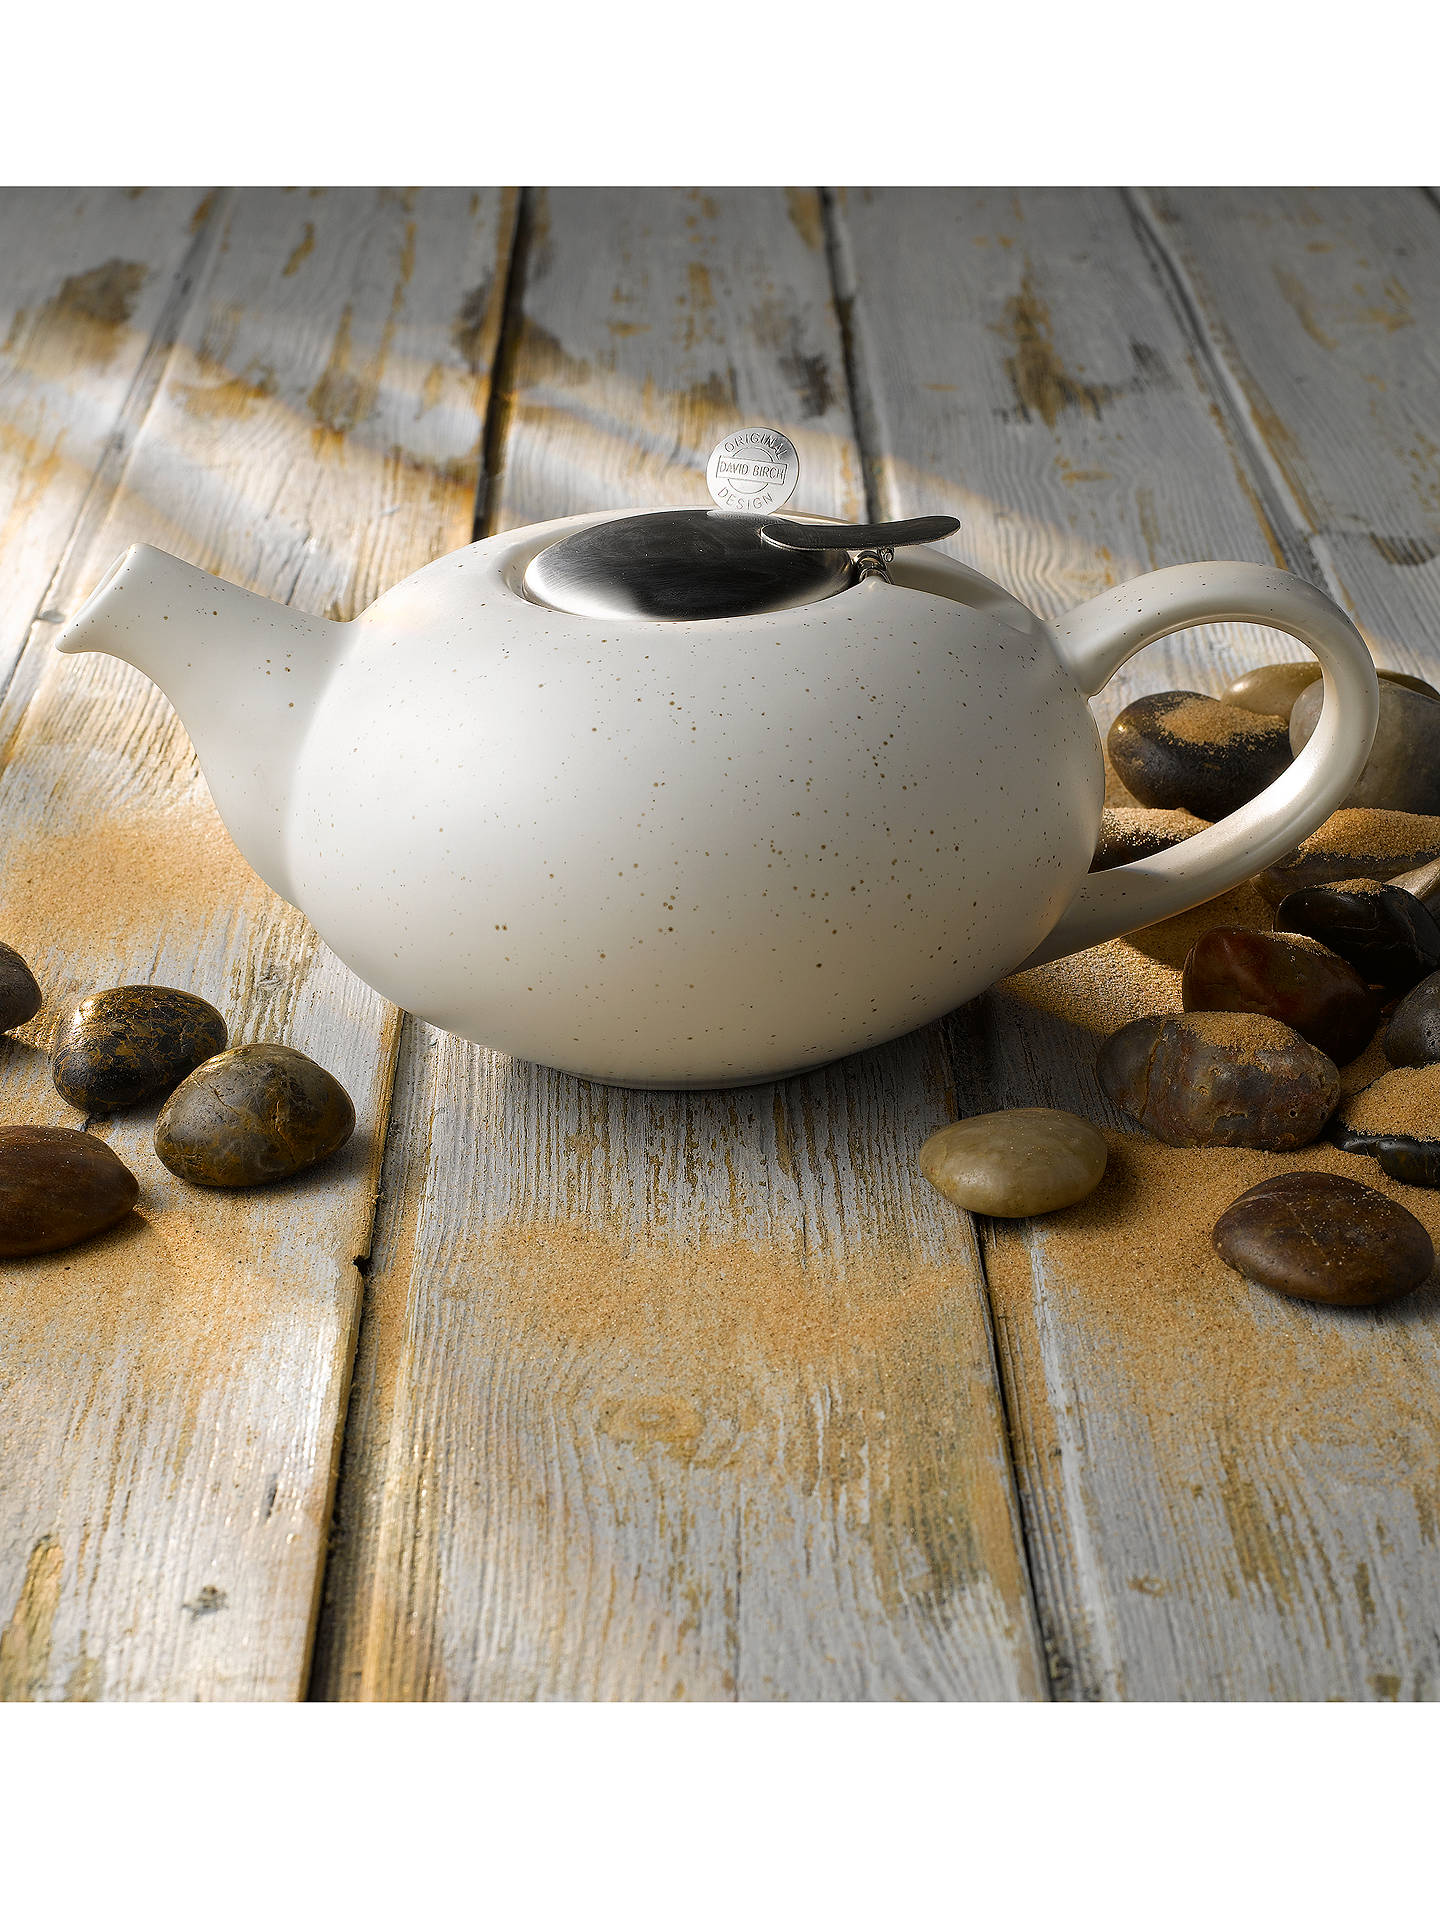 BuyLondon Pottery Speckled Pebble 2 Cup Teapot, White Online at johnlewis.com